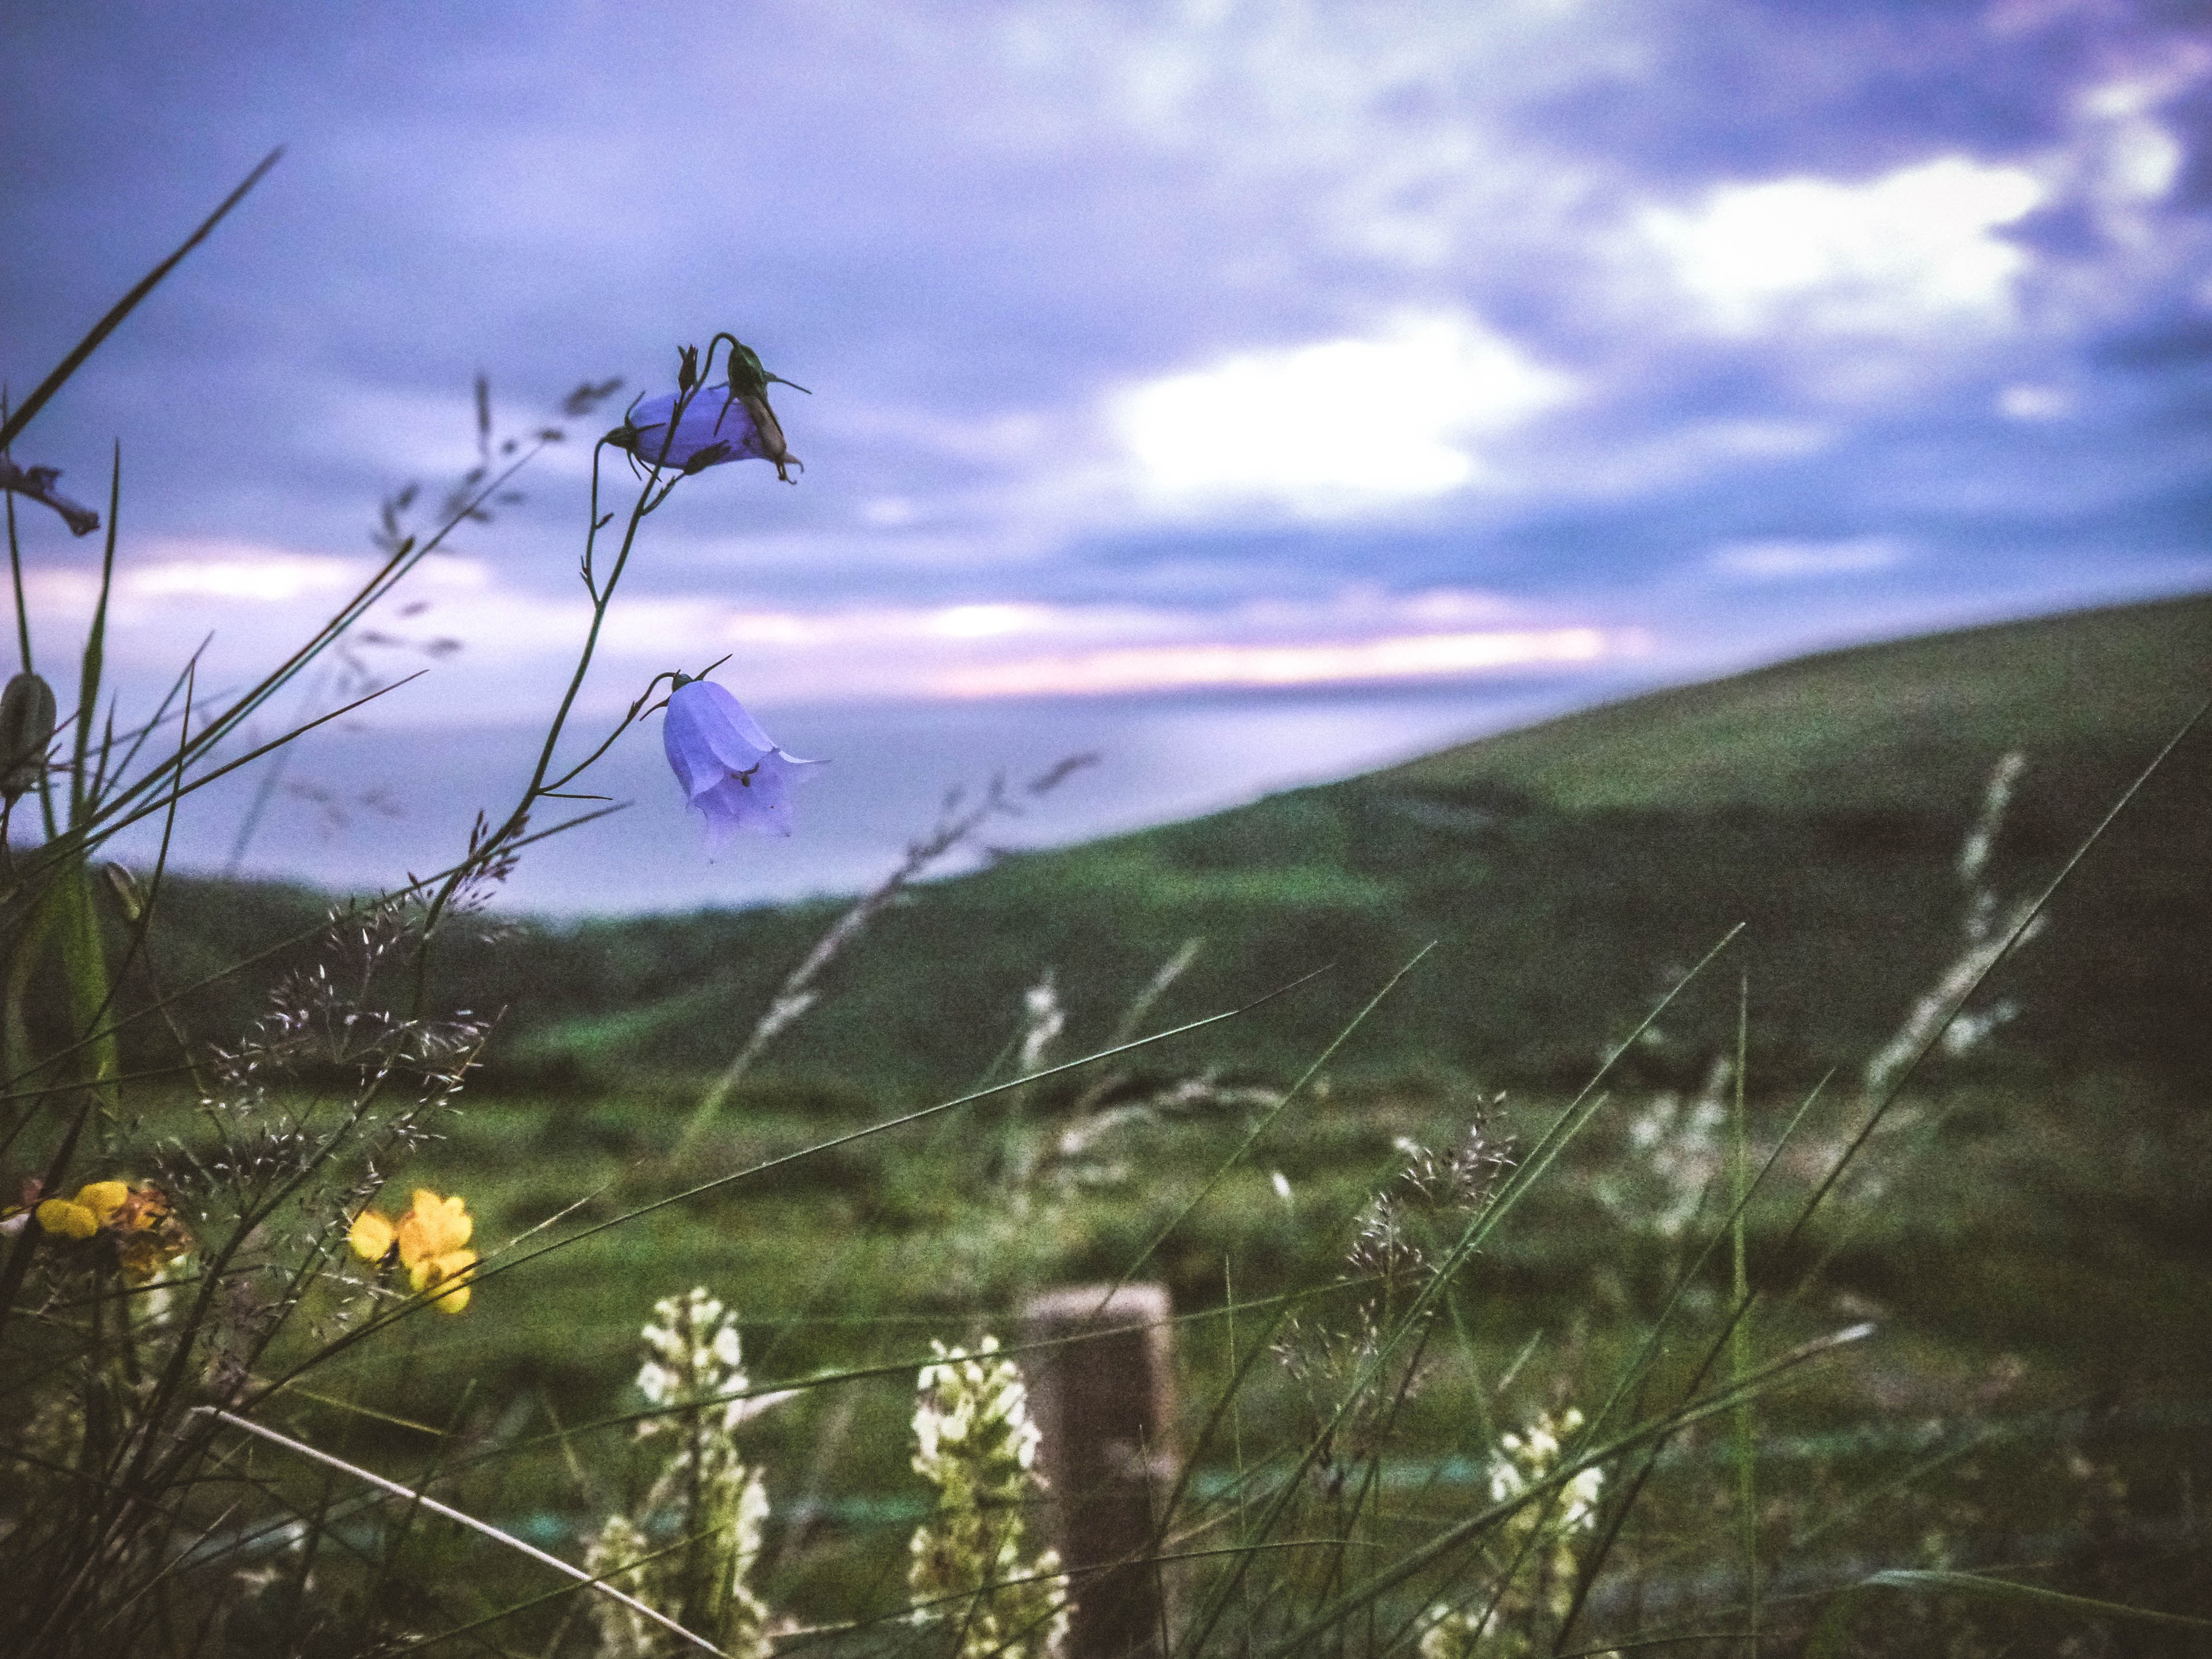 A bleak shot of blue, yellow and white flowers at the edge of a meadow